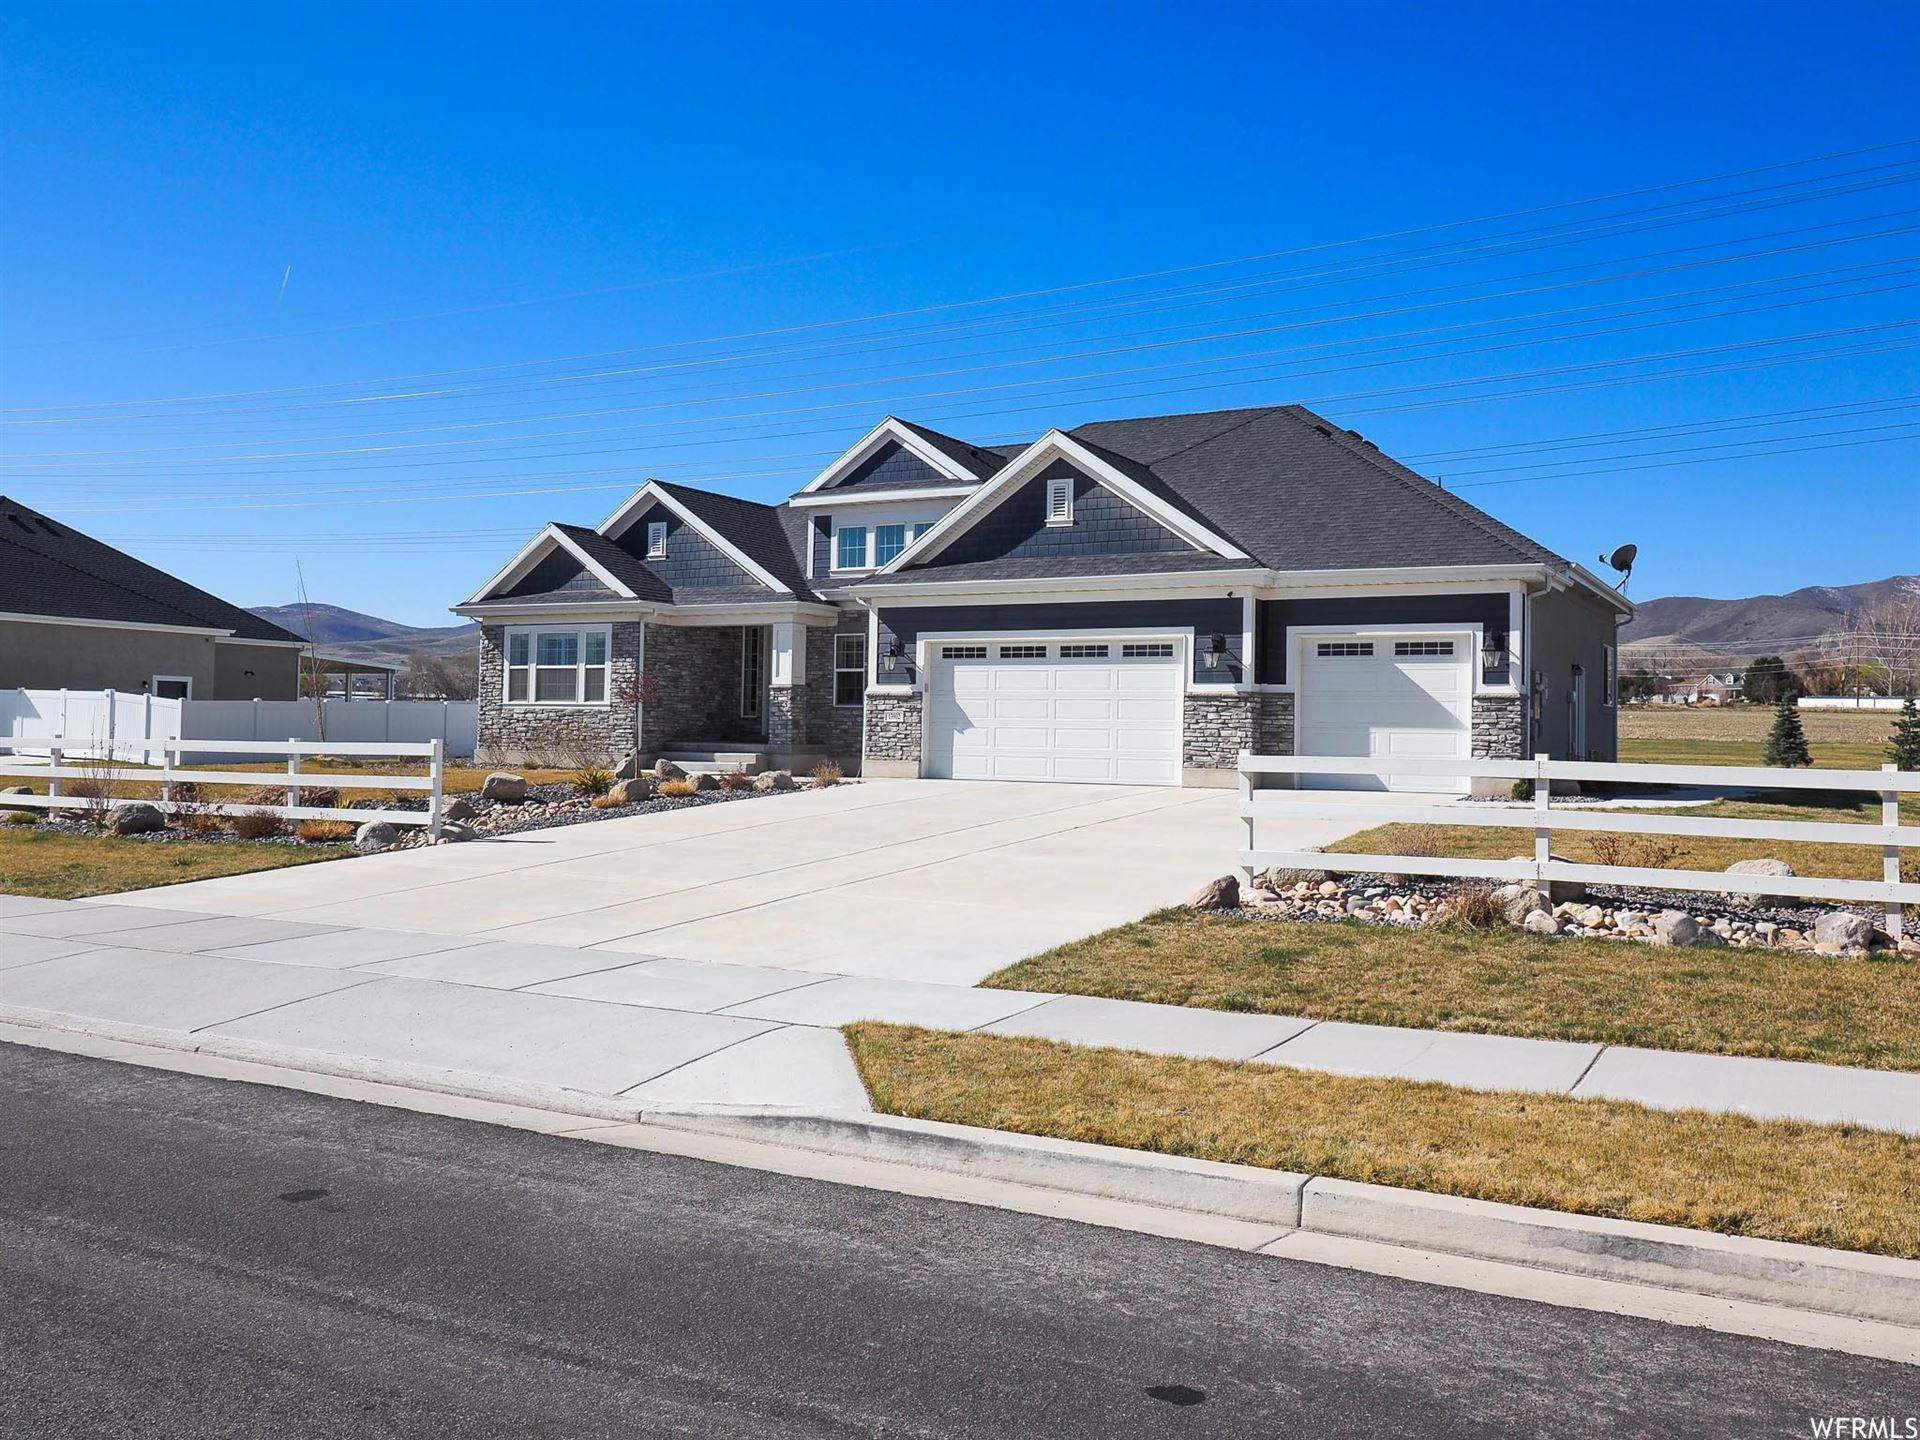 Photo of 13902 S OXFORDSHIRE DR, Bluffdale, UT 84065 (MLS # 1725529)